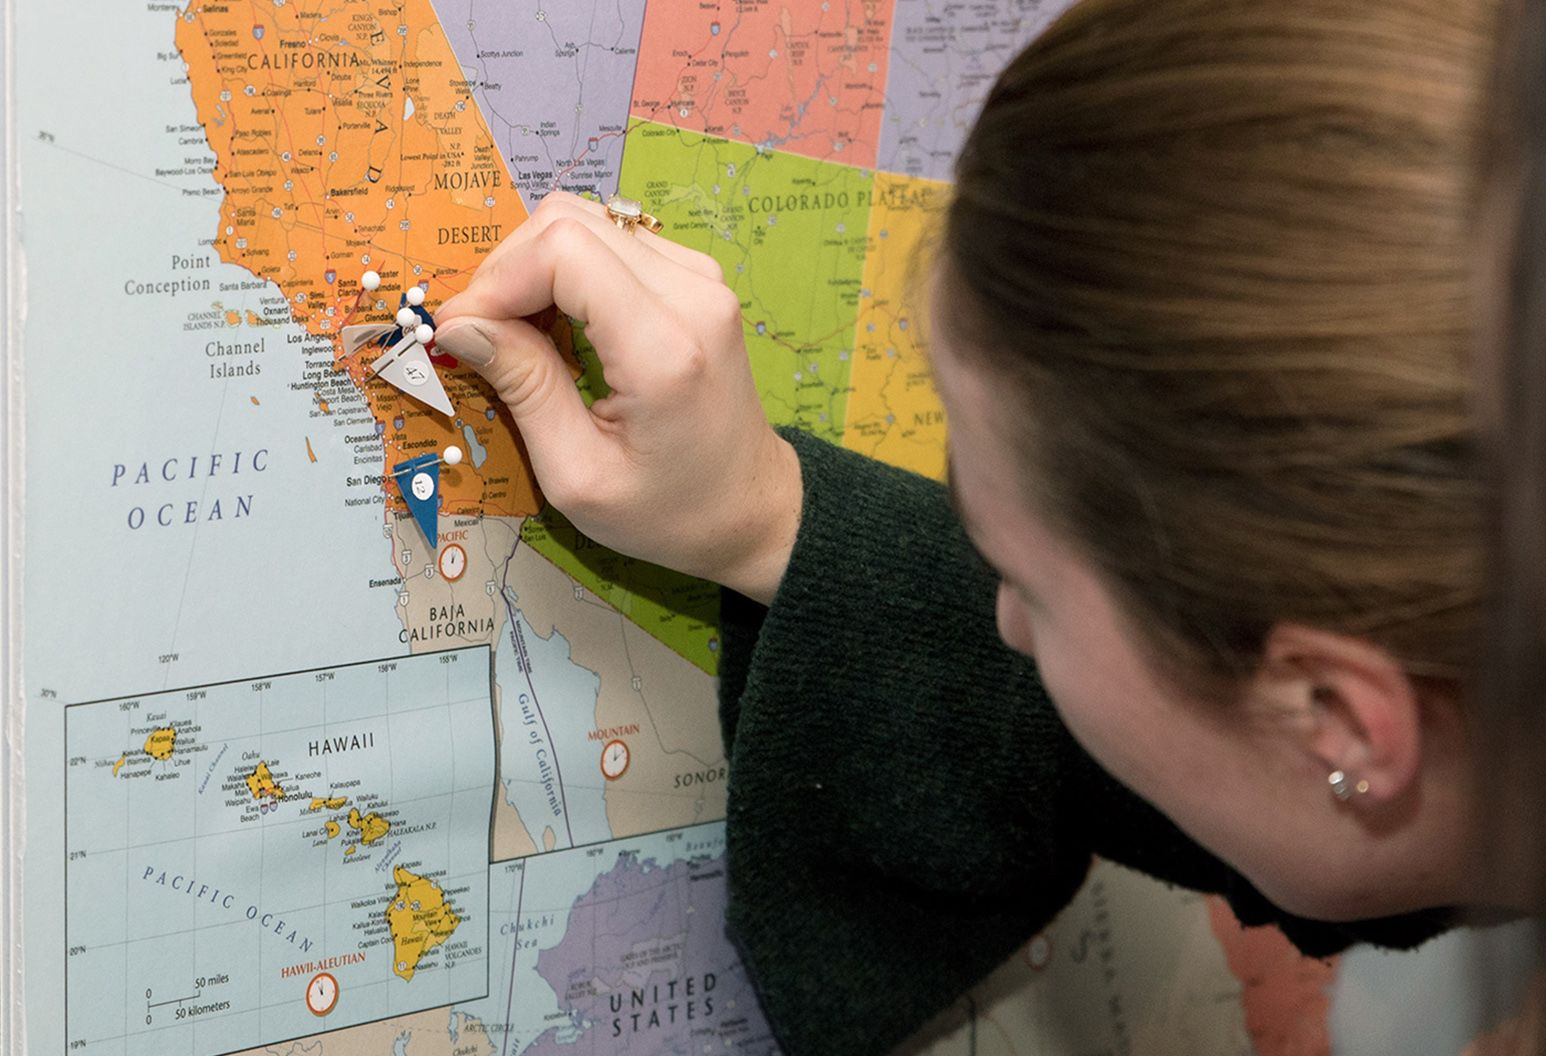 Women placing pins on a map of the United States.